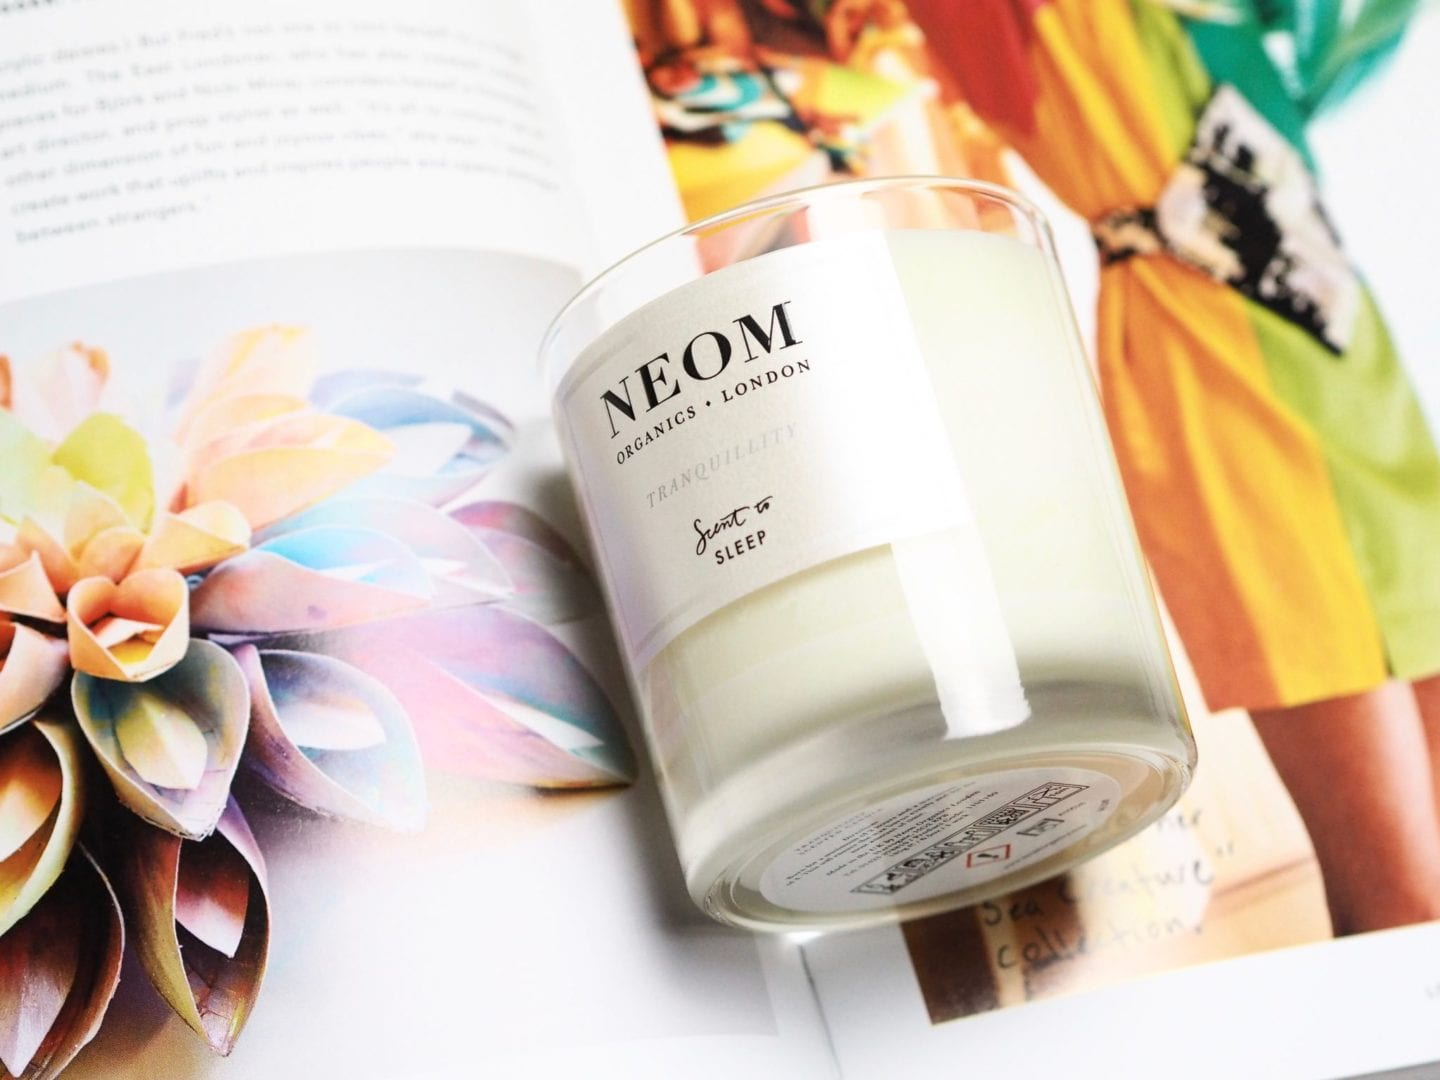 Neom 'Tranquility' candle